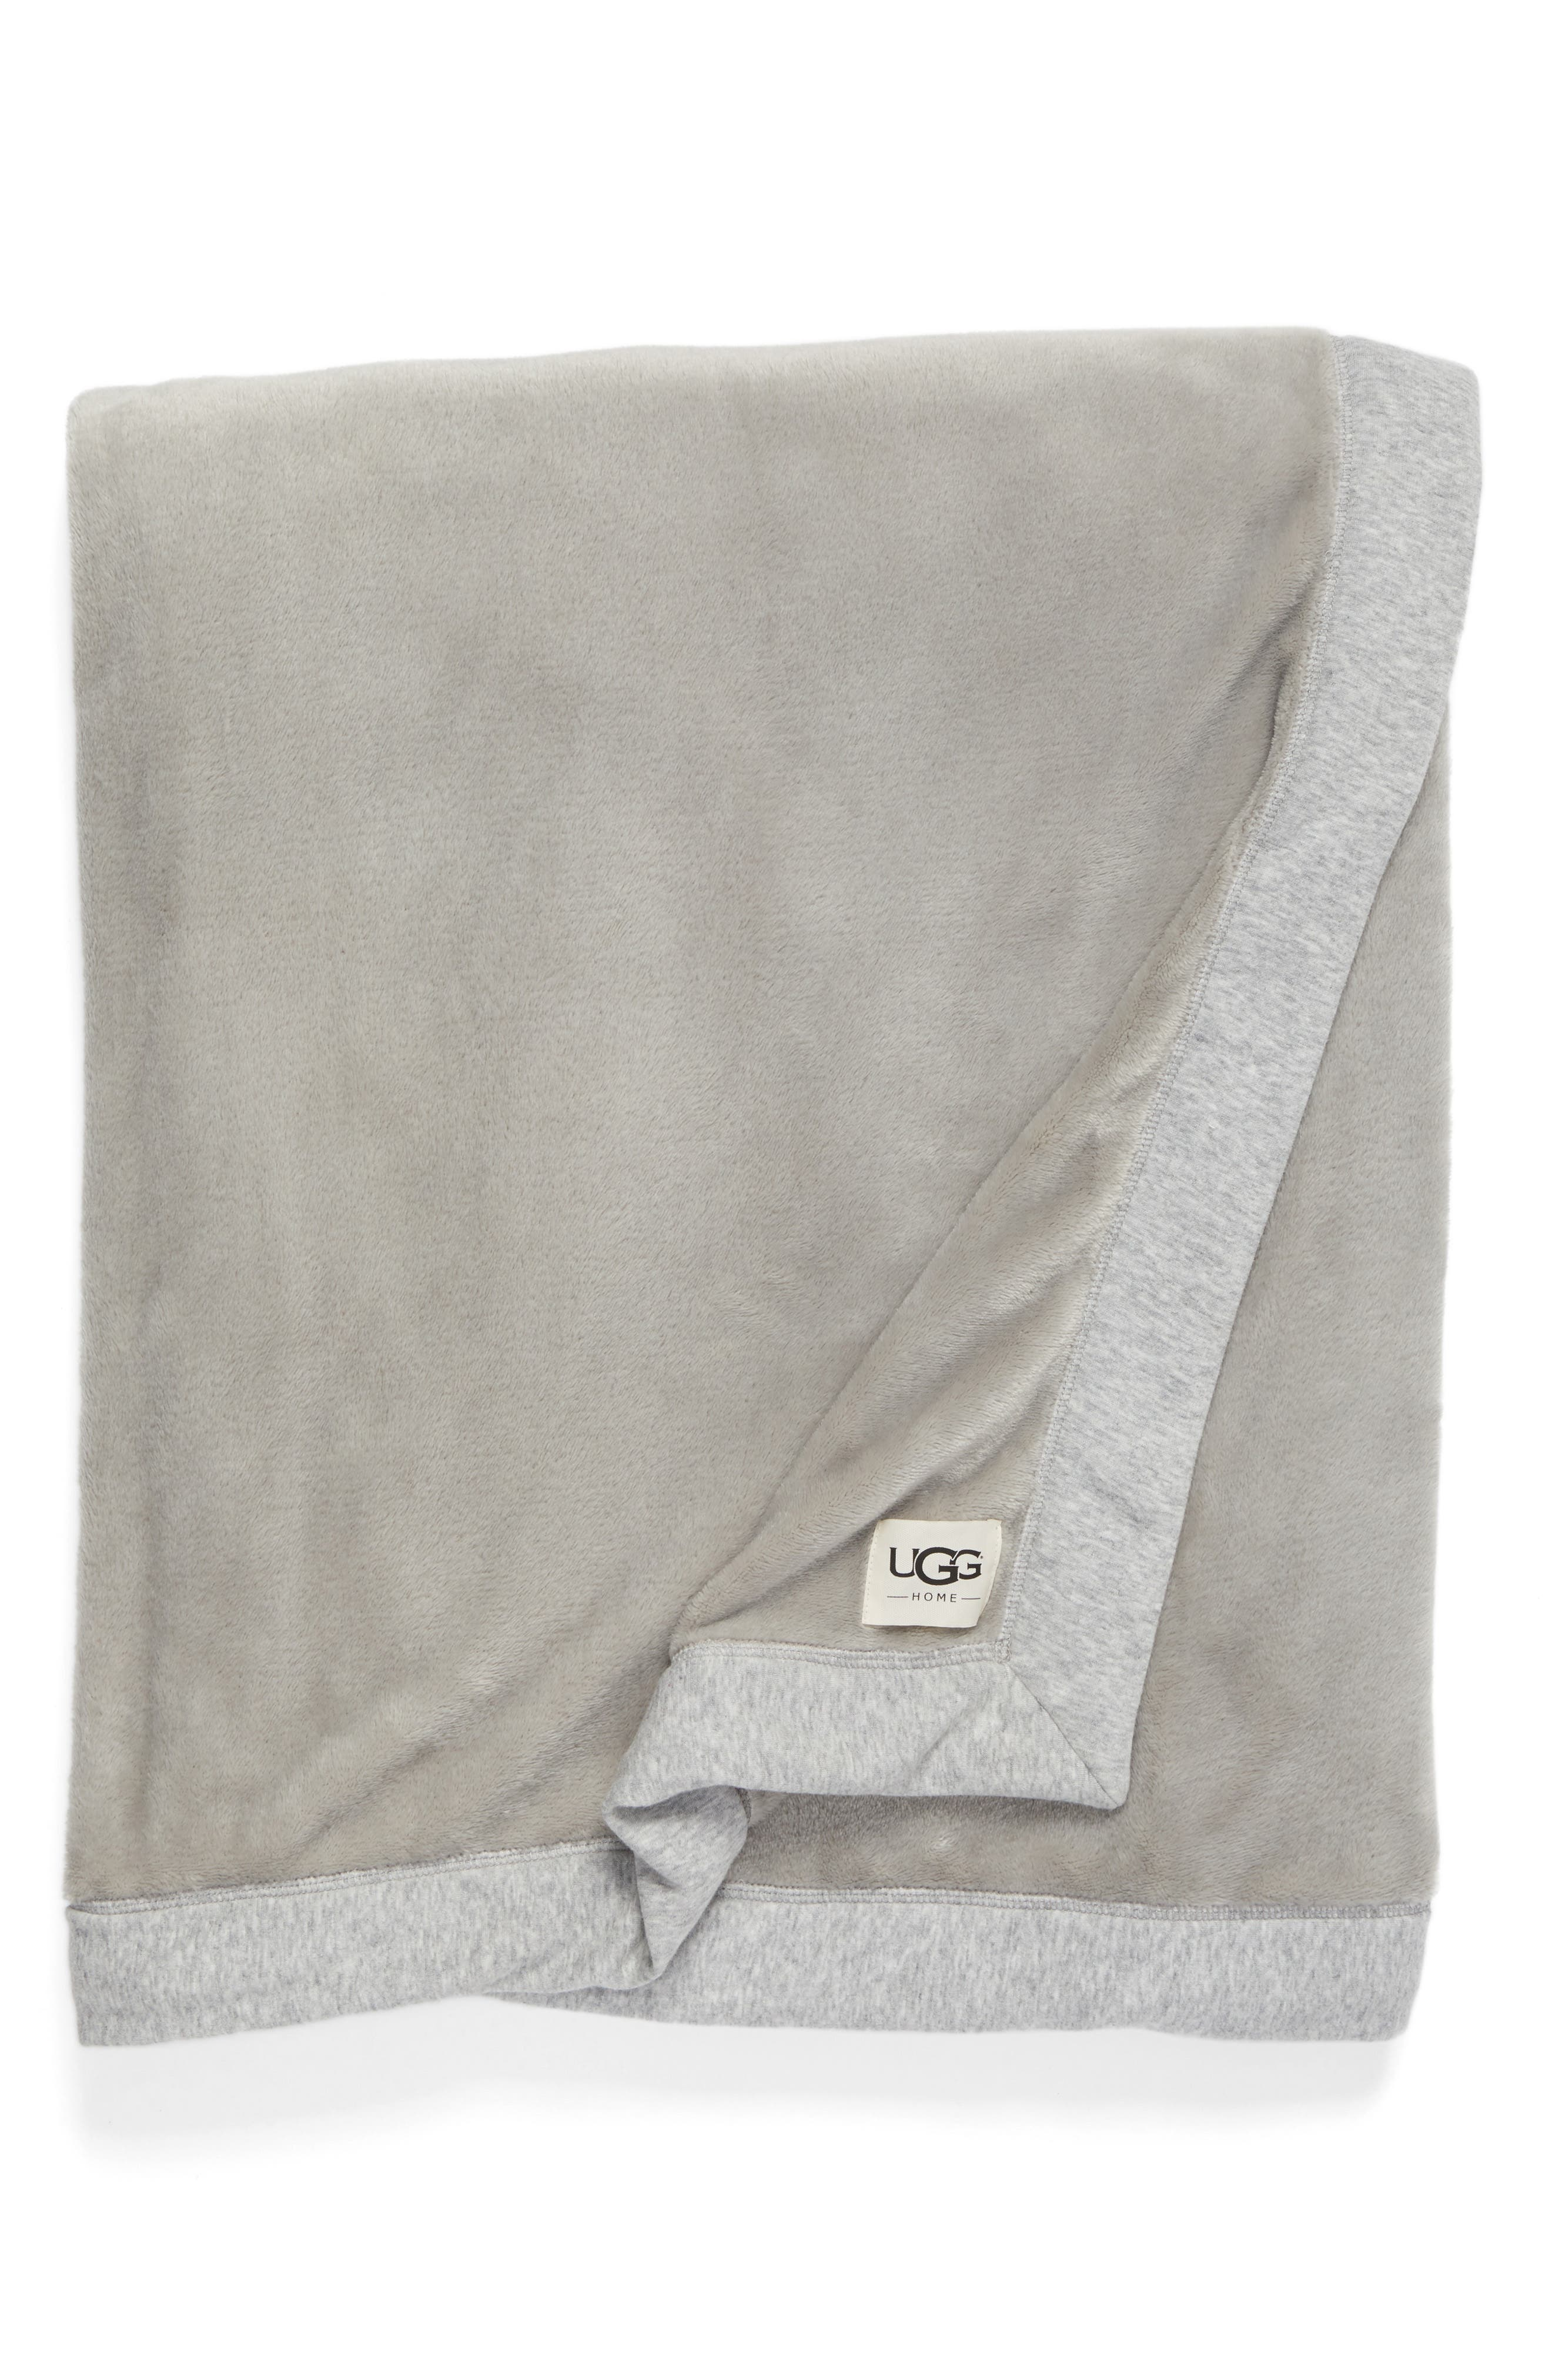 UGG<SUP>®</SUP> Duffield Throw, Main, color, SEAL HEATHER GREY